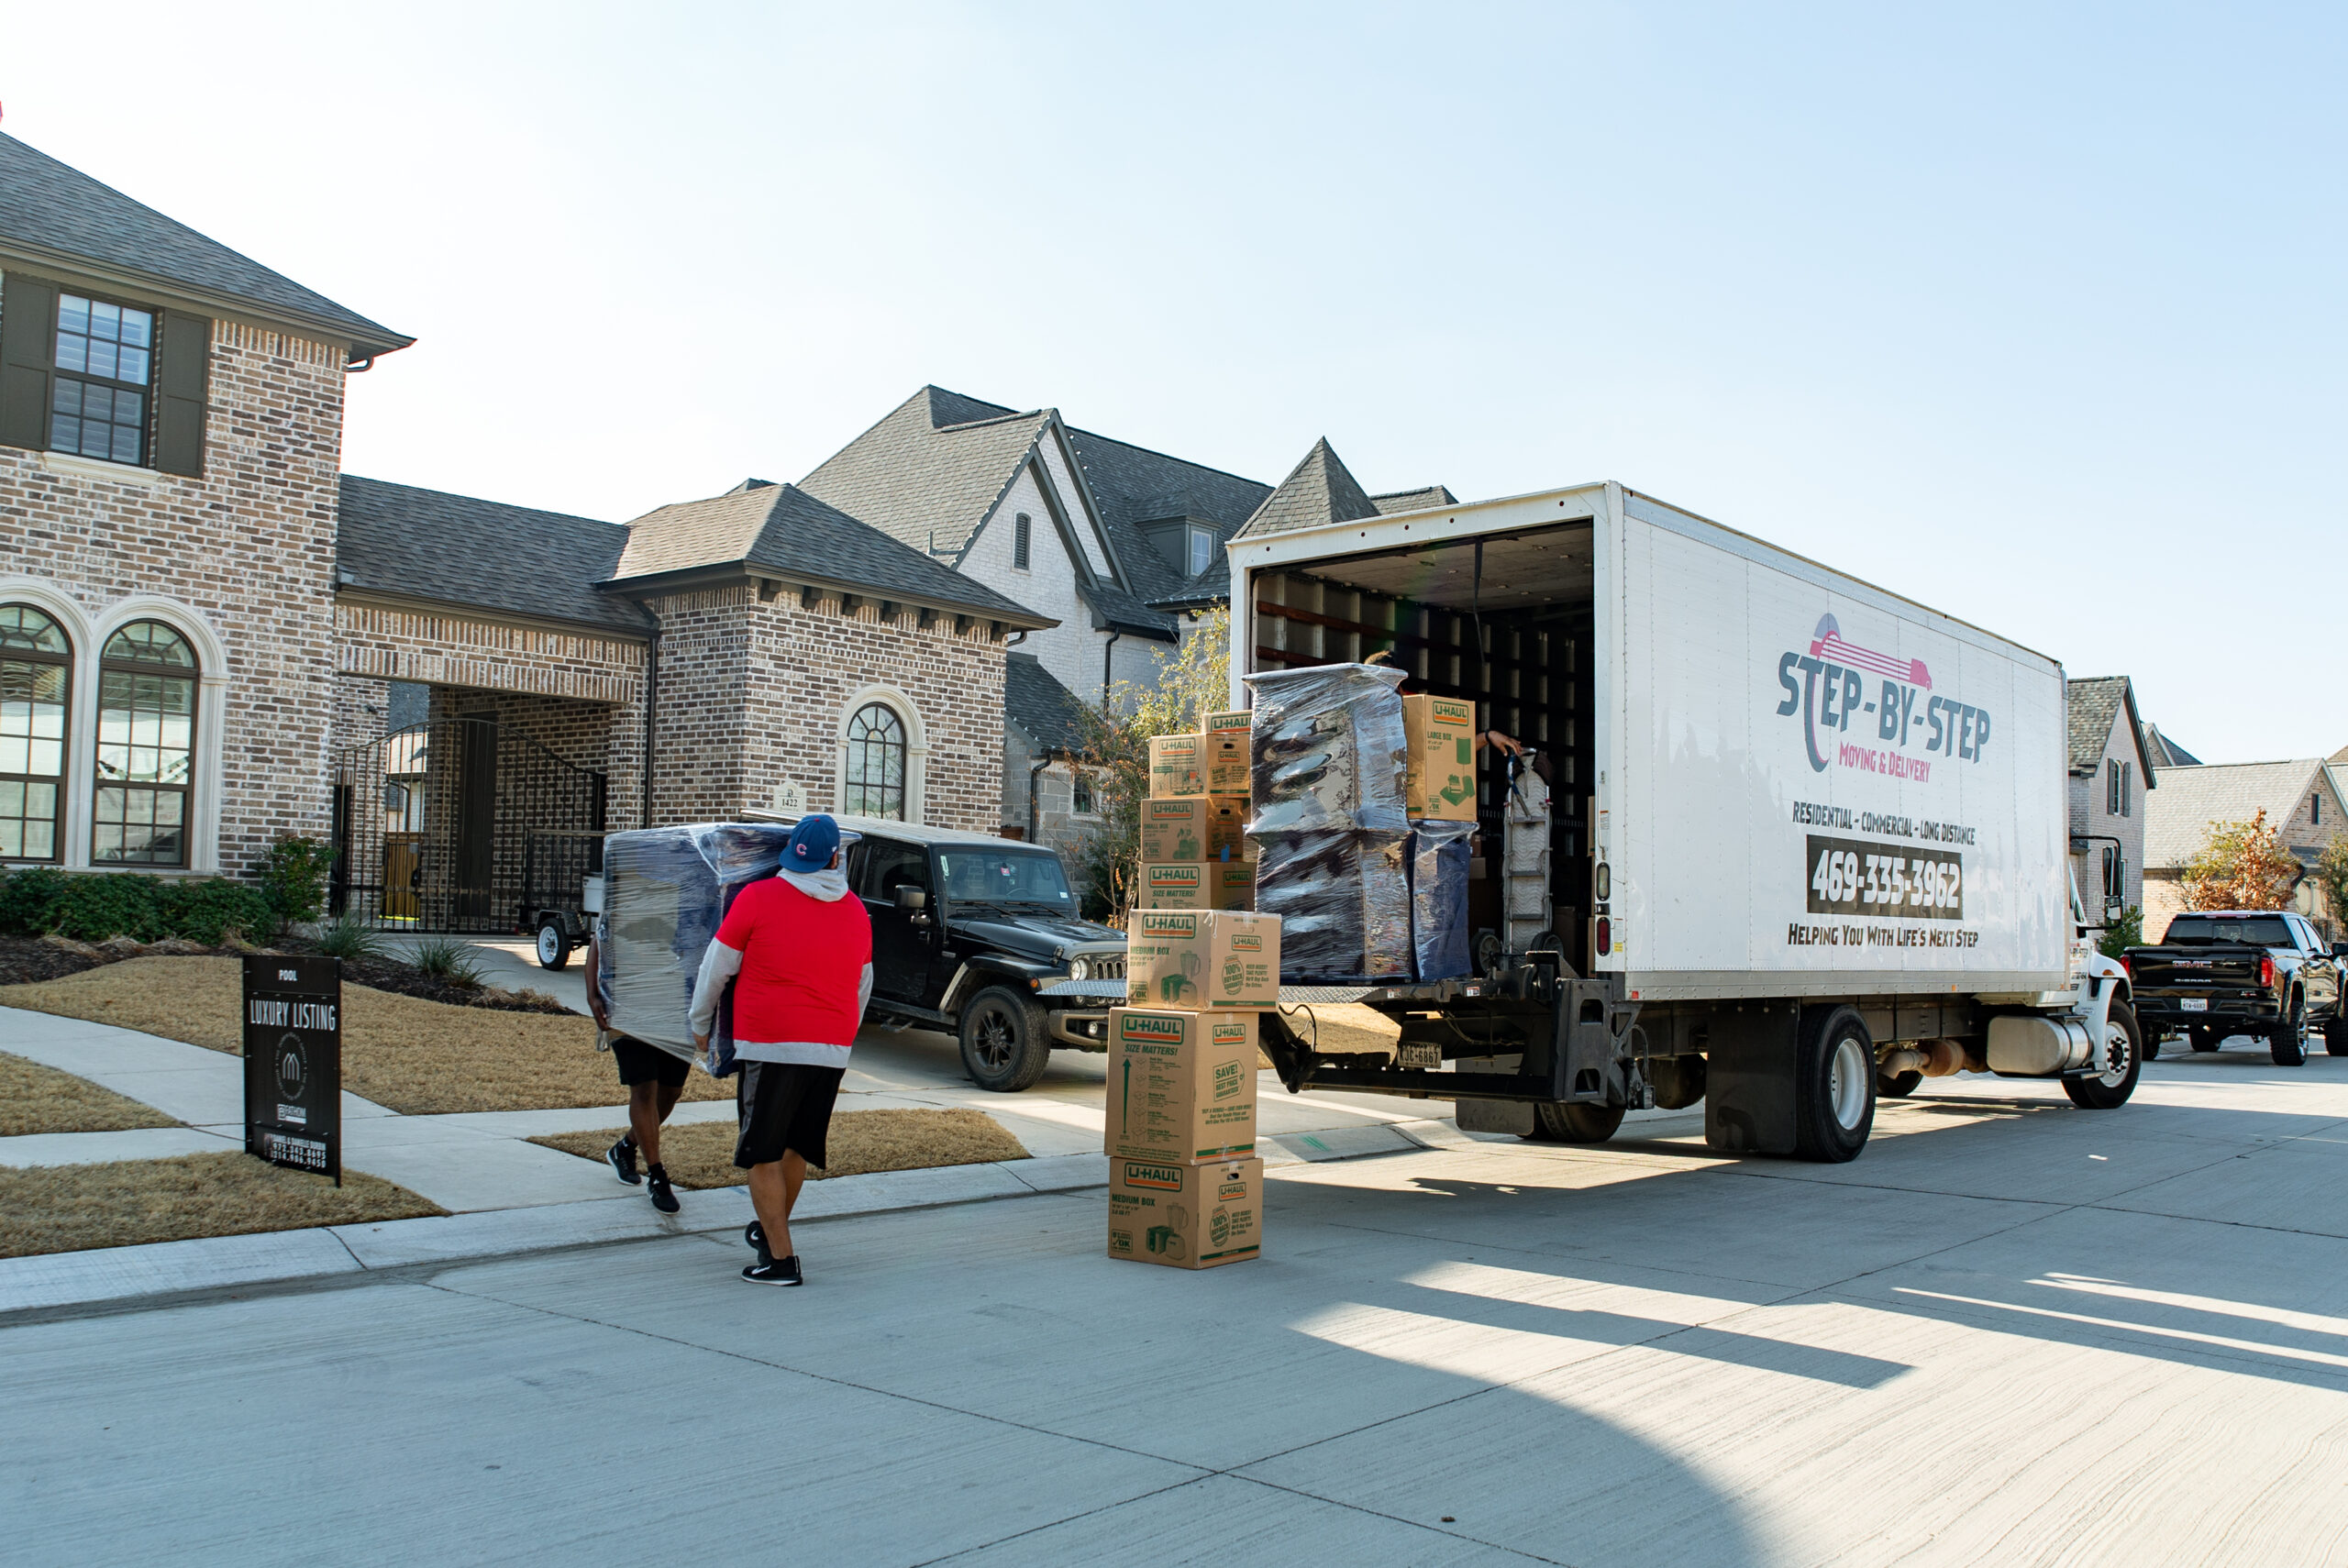 Loading and Unloading Services- Step by Step moving and delivery